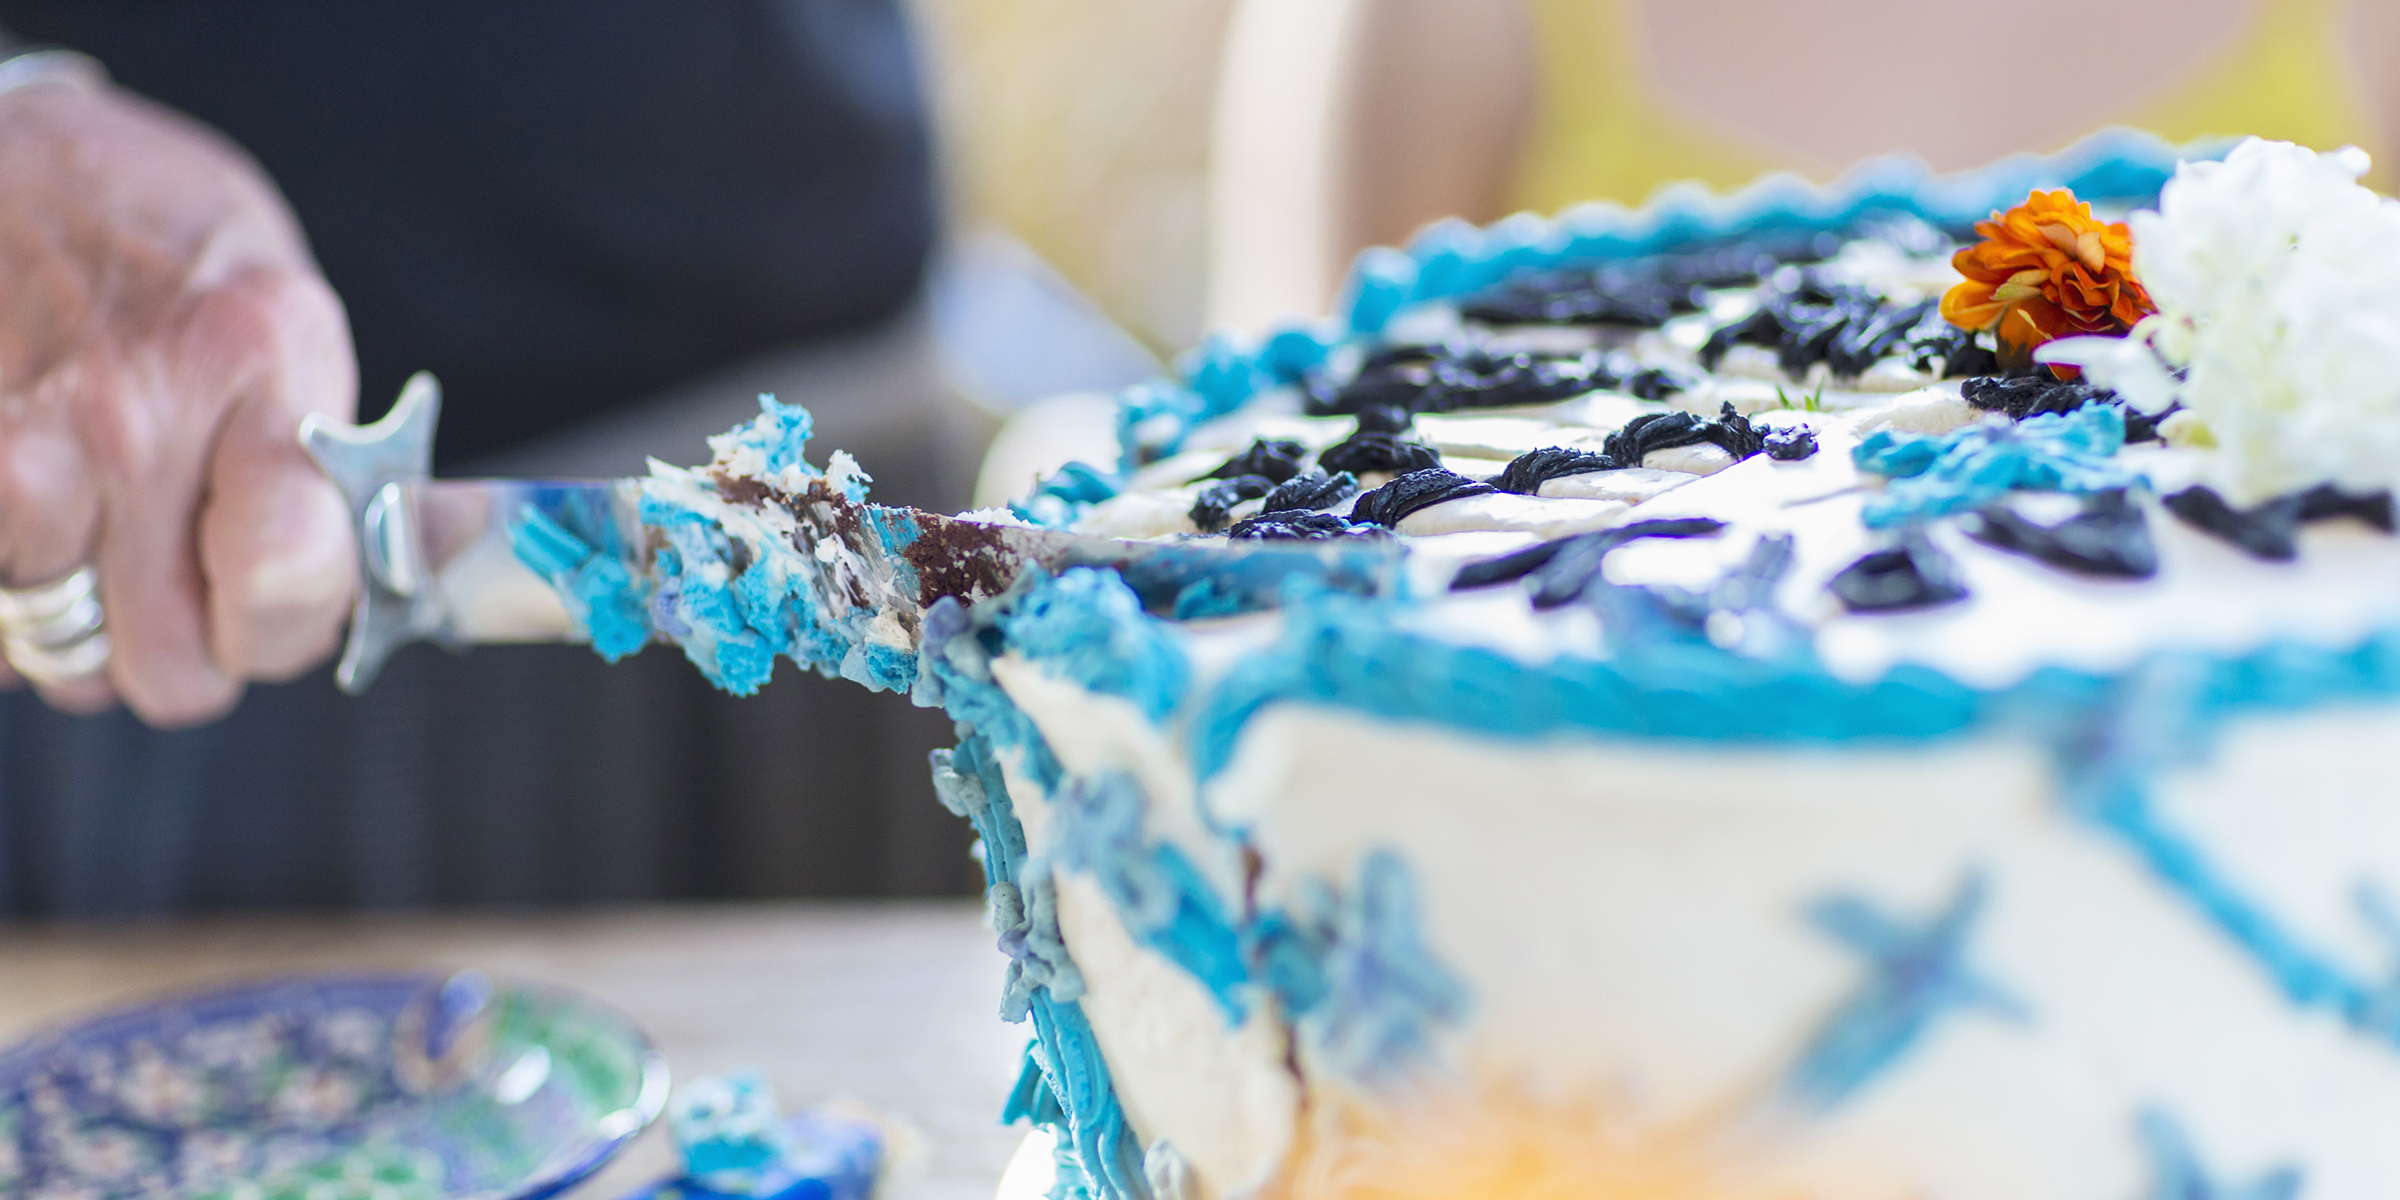 Walmart Apologizes After Familys Graduation Cake Turned Out To Be Styrofoam